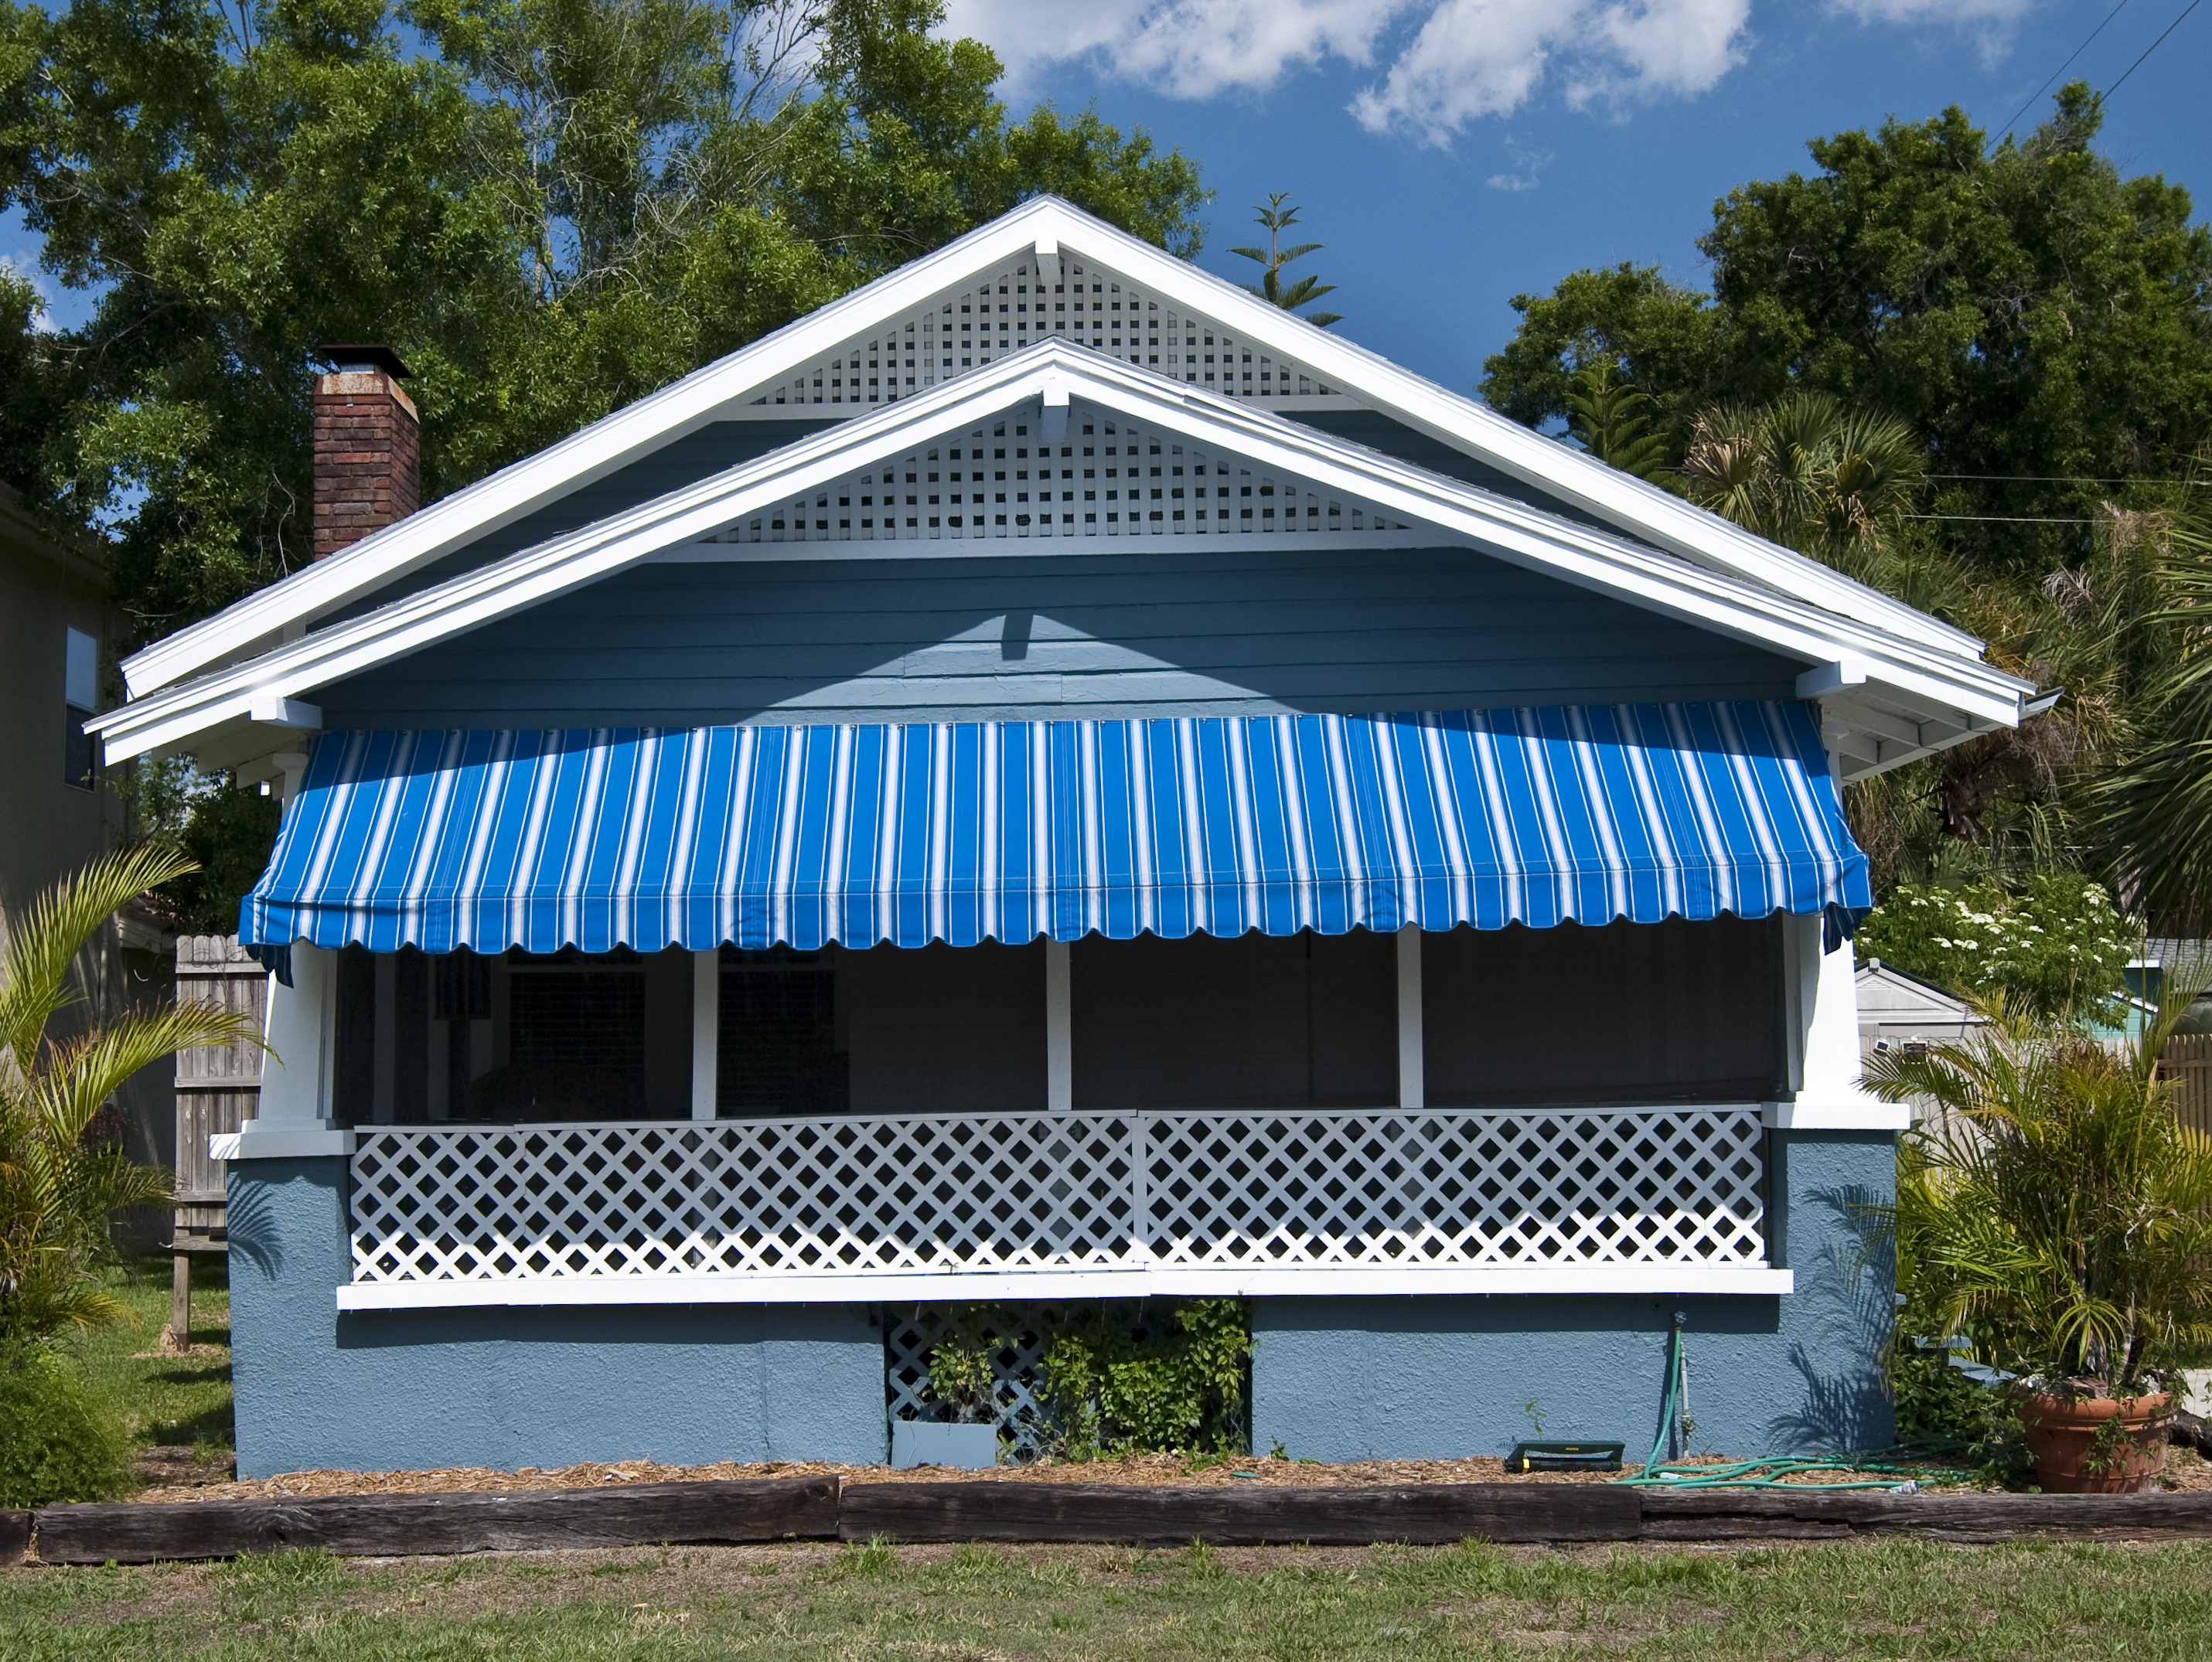 8 Exterior Renovations That Can Save You Money